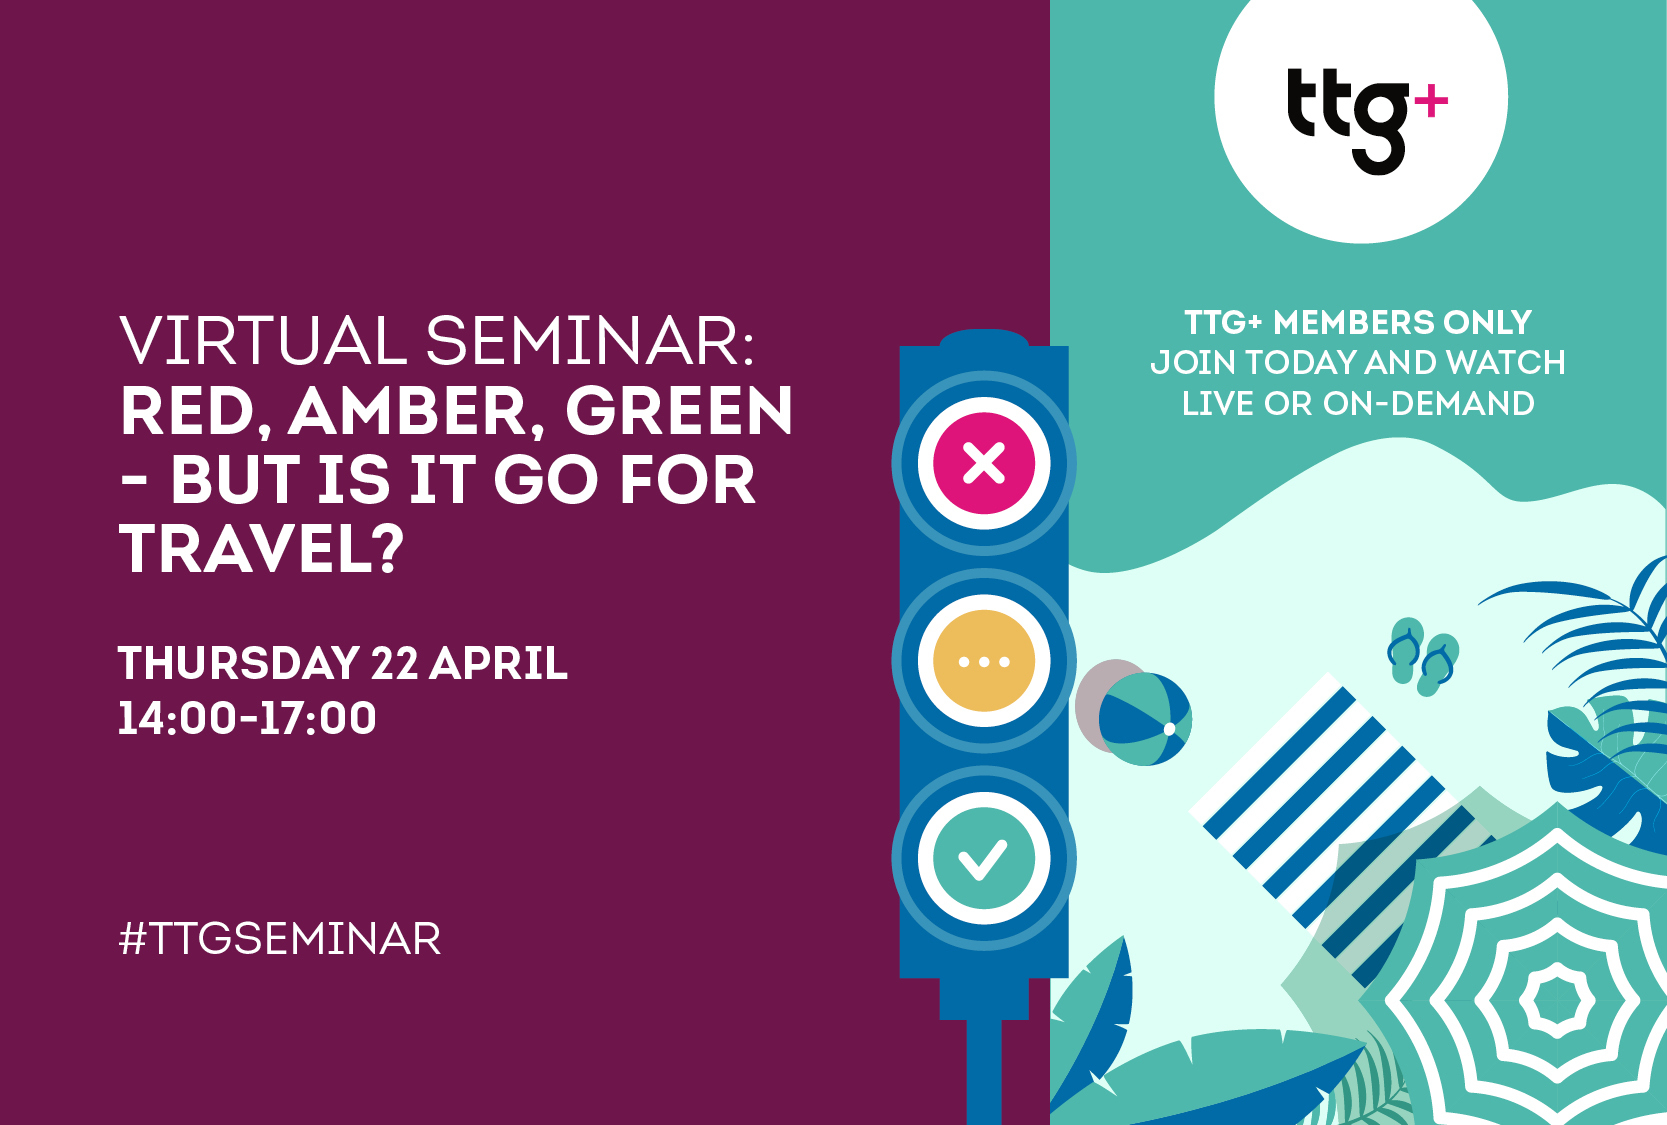 Join the latest TTG Seminar on April 22: Red, amber, green - but is it Go for travel?